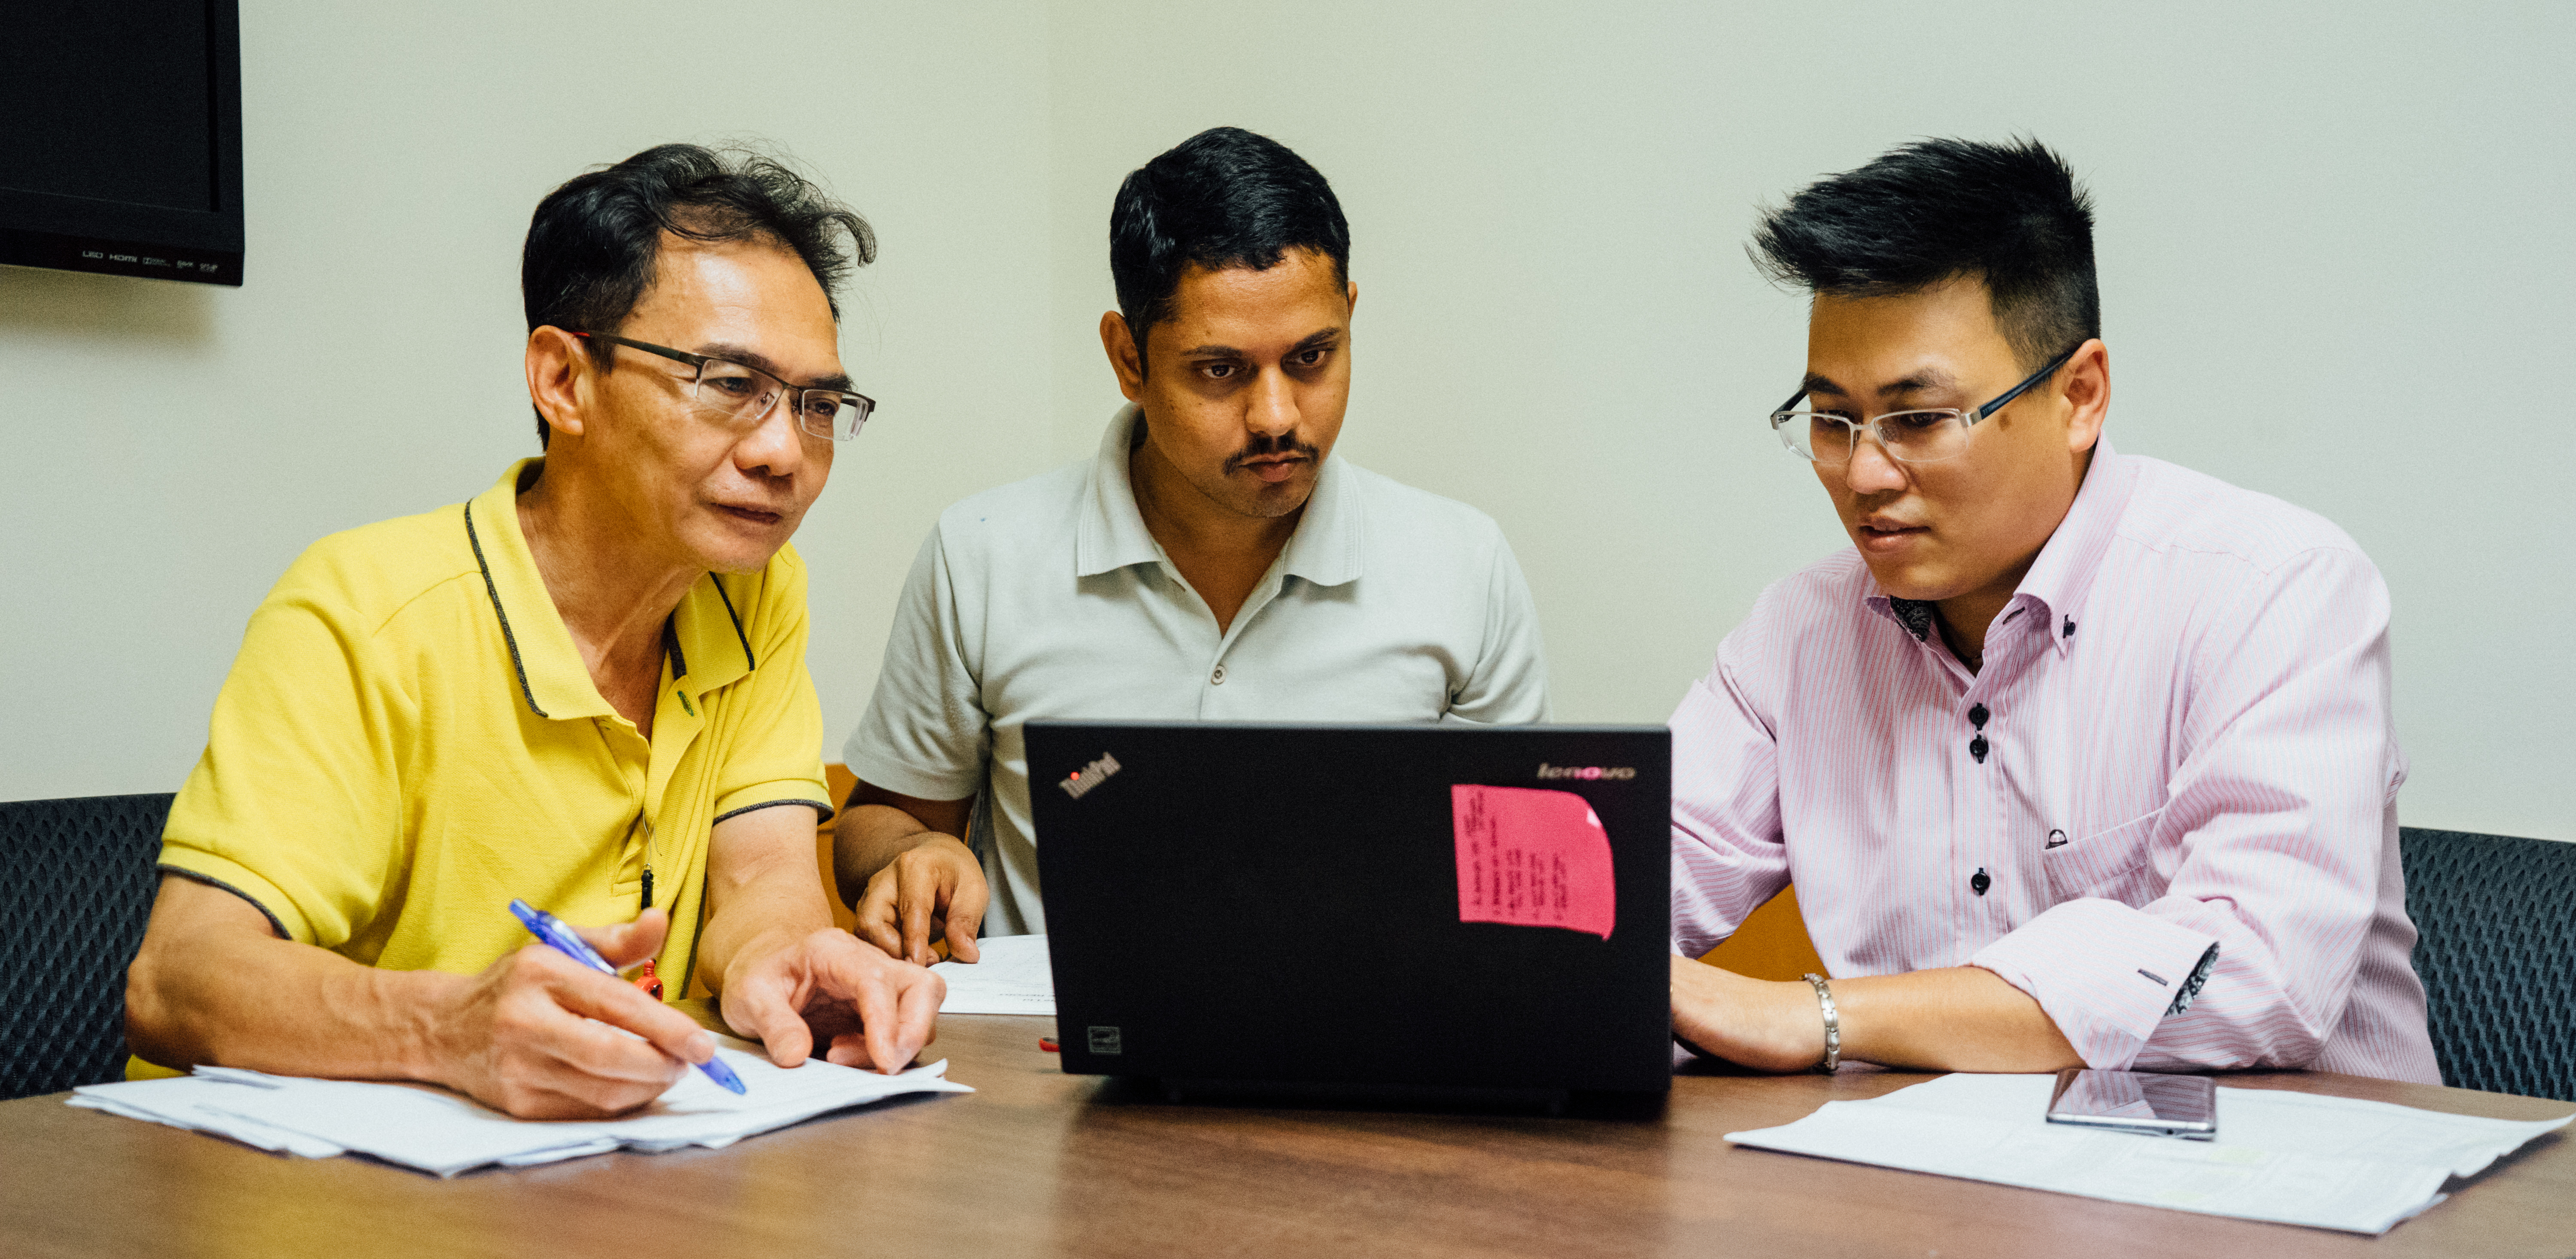 From left to right, Lau Cheng Yeow, Mohan Prasanna and Eugene Tan: the Facilities team, hard at work.